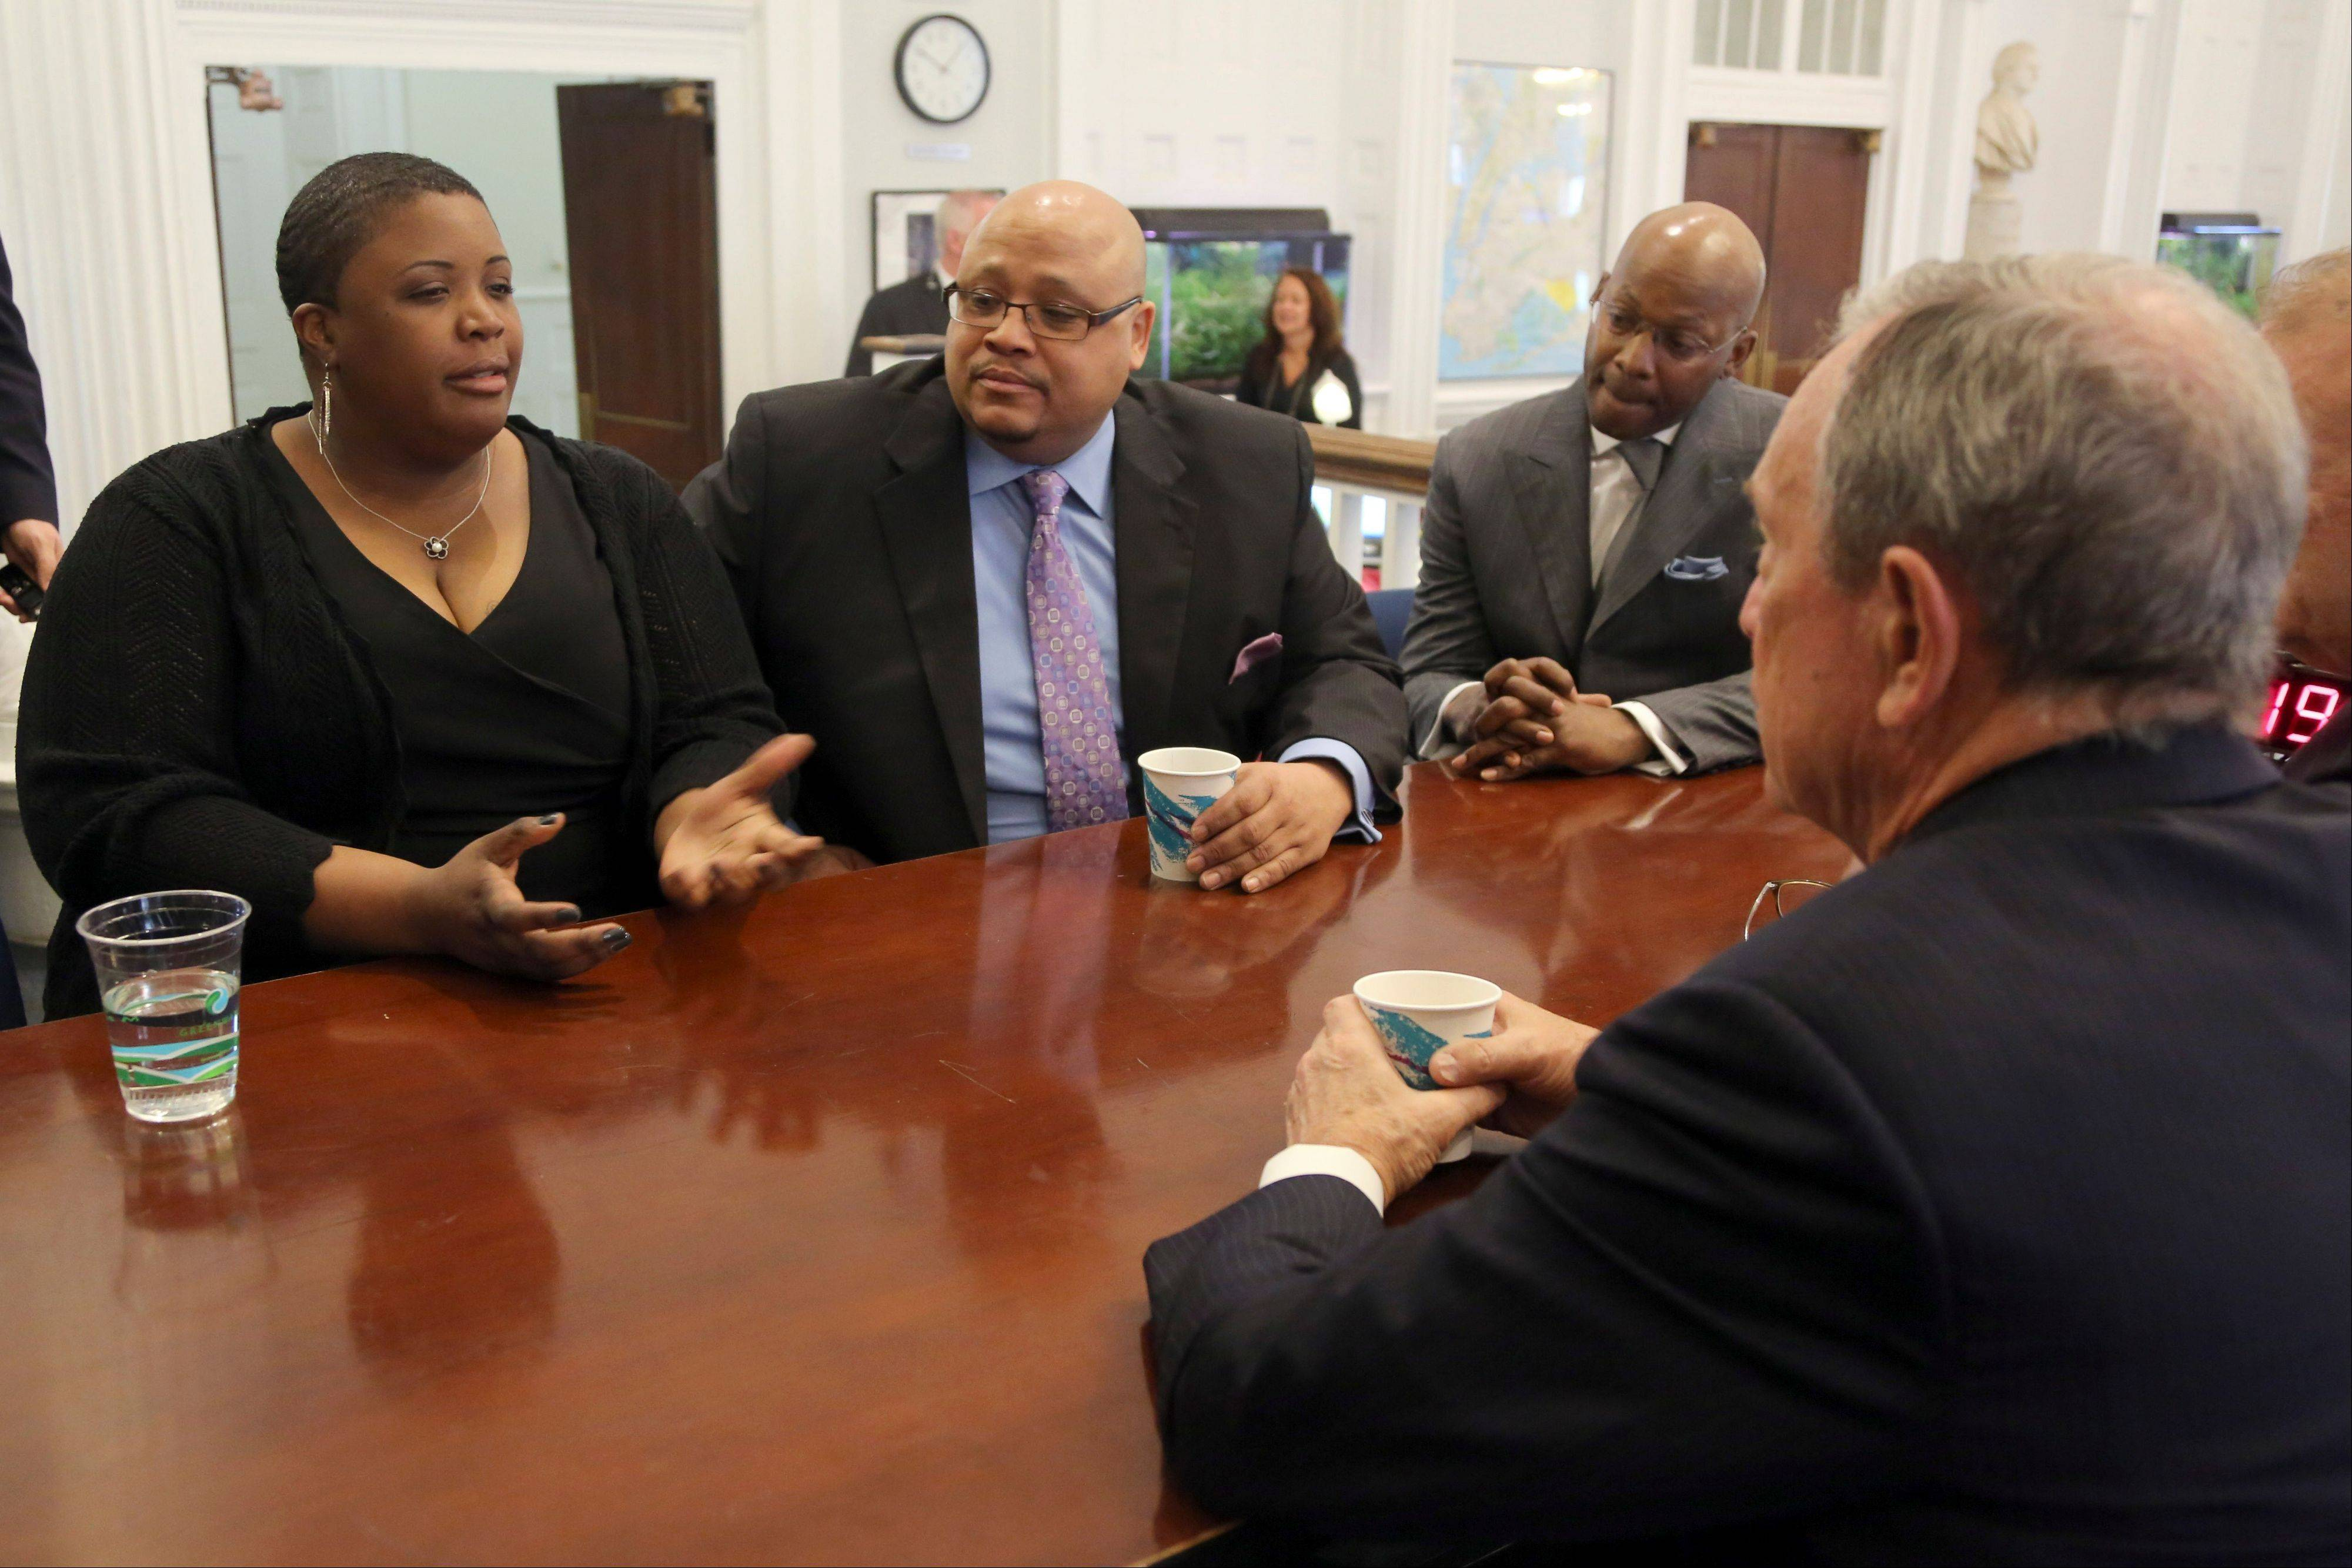 New York City Mayor Michael Bloomberg, foreground, meets with Cleopatra Cowley-Pendleton, left, and Nathaniel A. Pendleton Sr., center, and Van Vincent, Thursday in New York. The Pendletons are the parents of Hadiya Pendleton, who performed at President Obama's inauguration and was shot and killed in Chicago in February. She was 15 years old. Cowley-Pendleton and Pendleton recently filmed a television commercial for the Mayor's anti-gun violence coalition. Vincent is a cousin of Hadiya's.